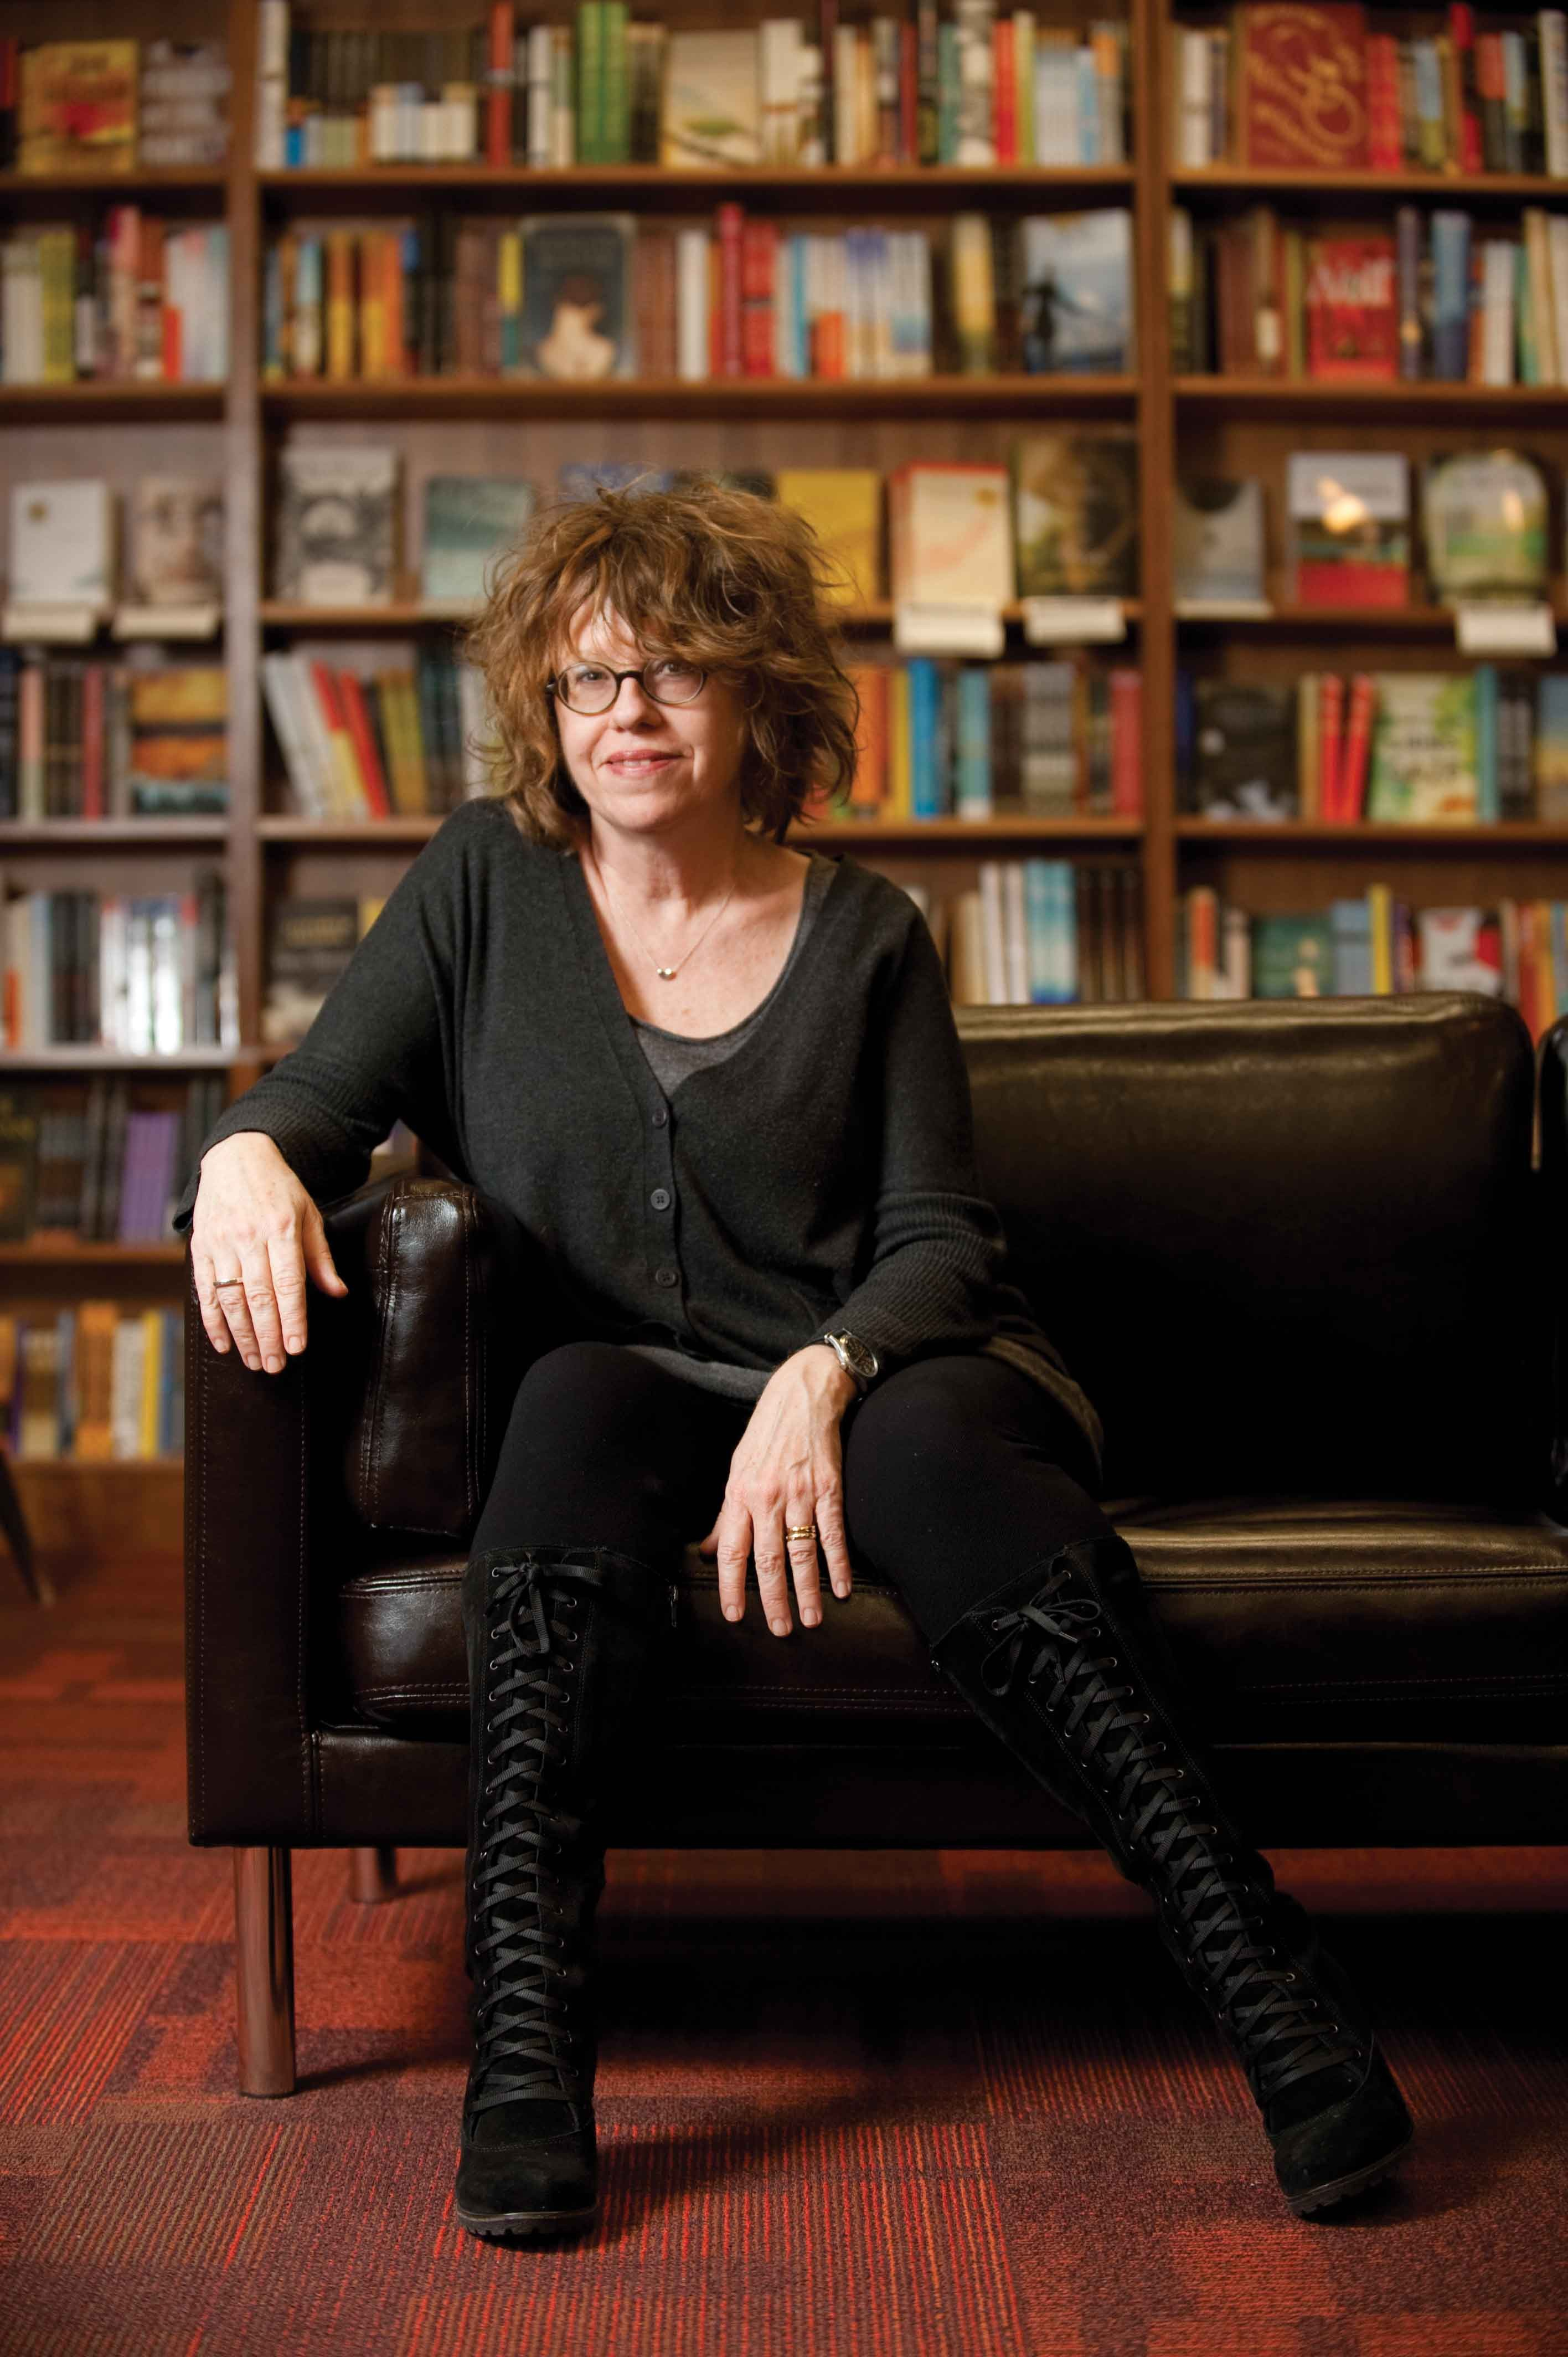 click to enlarge Judy Blundell at Oblong Books & Music in Rhinebeck. -  JENNIFER MAY